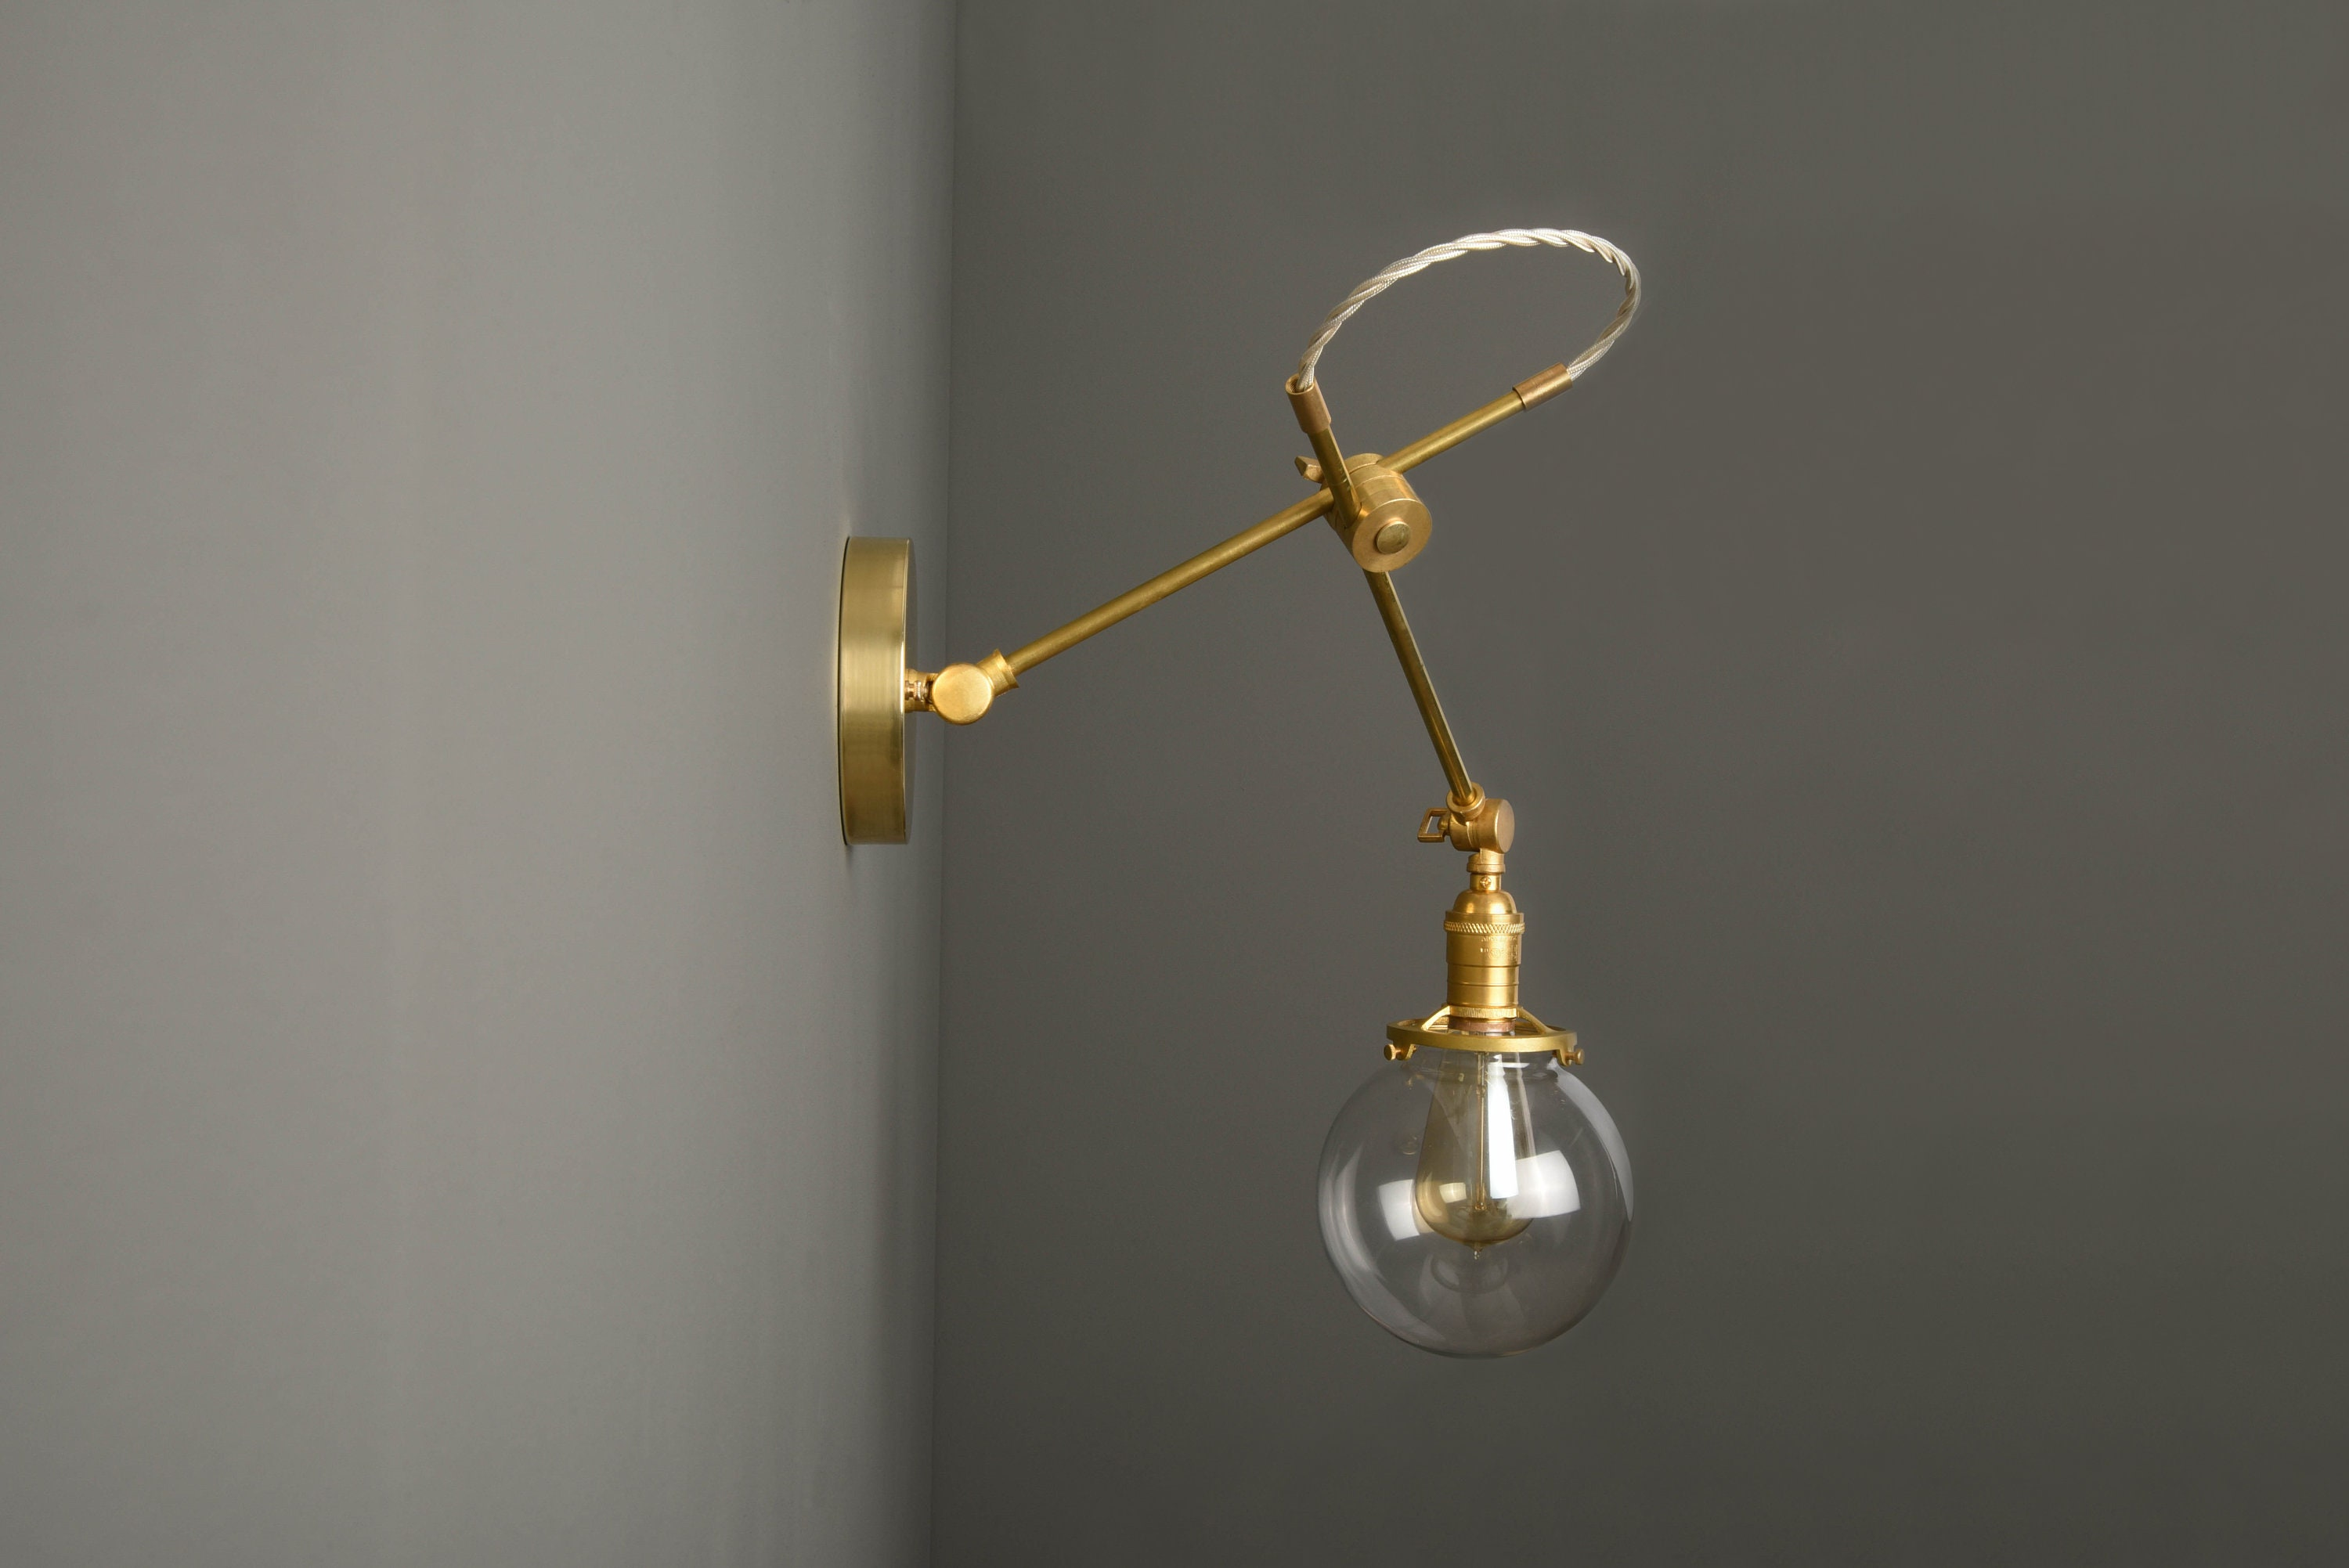 Adjustable Wall Sconce Industrial Wall Light Gold